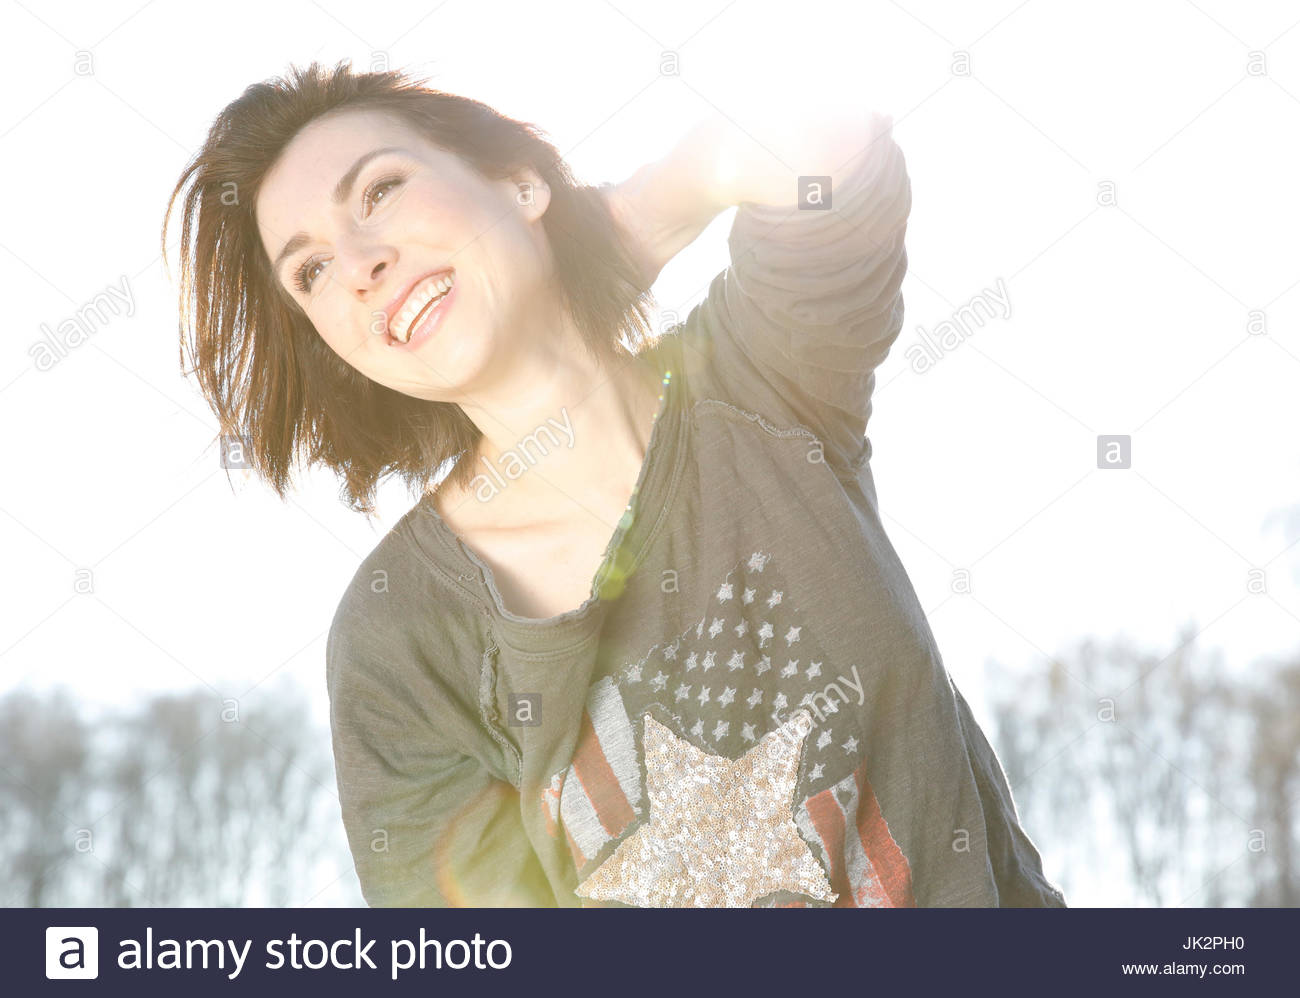 Portrait woman having fun outdoor in the sun - Stock Image